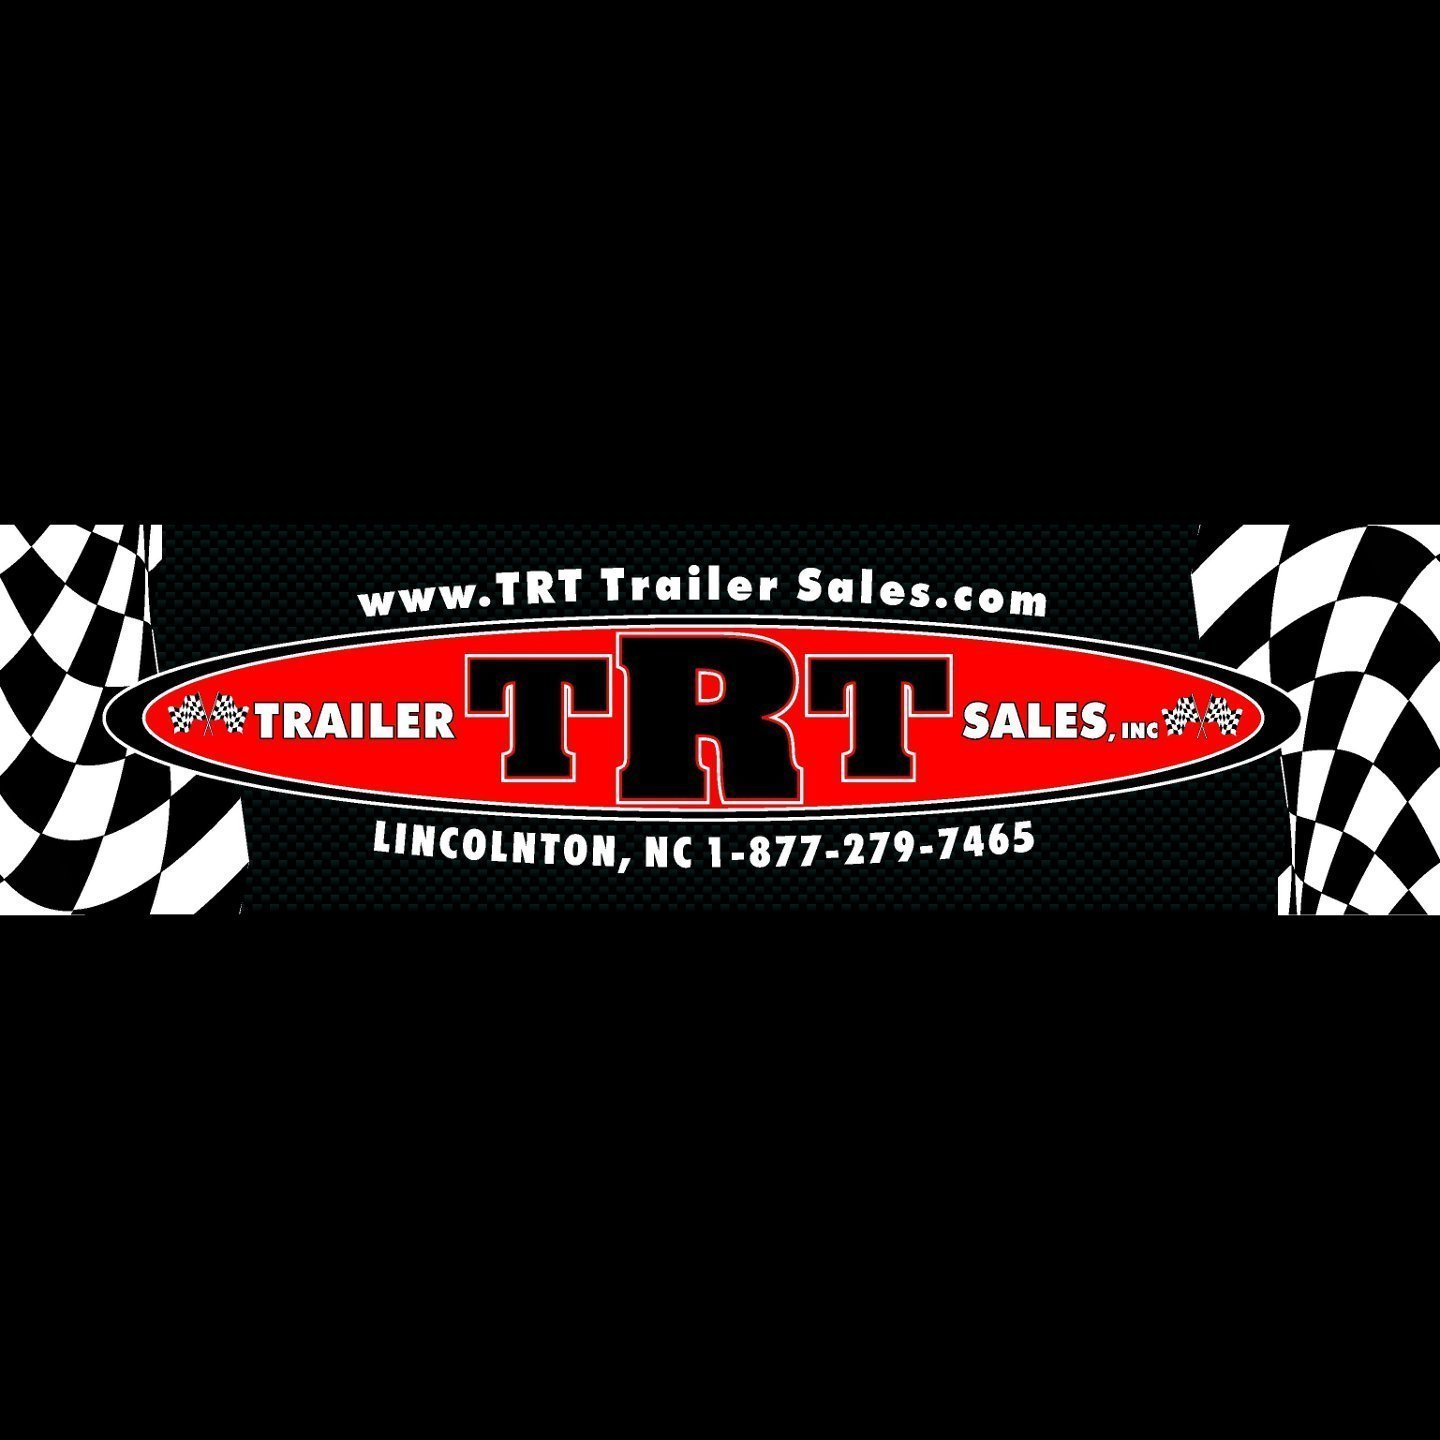 TRT Trailer Sales